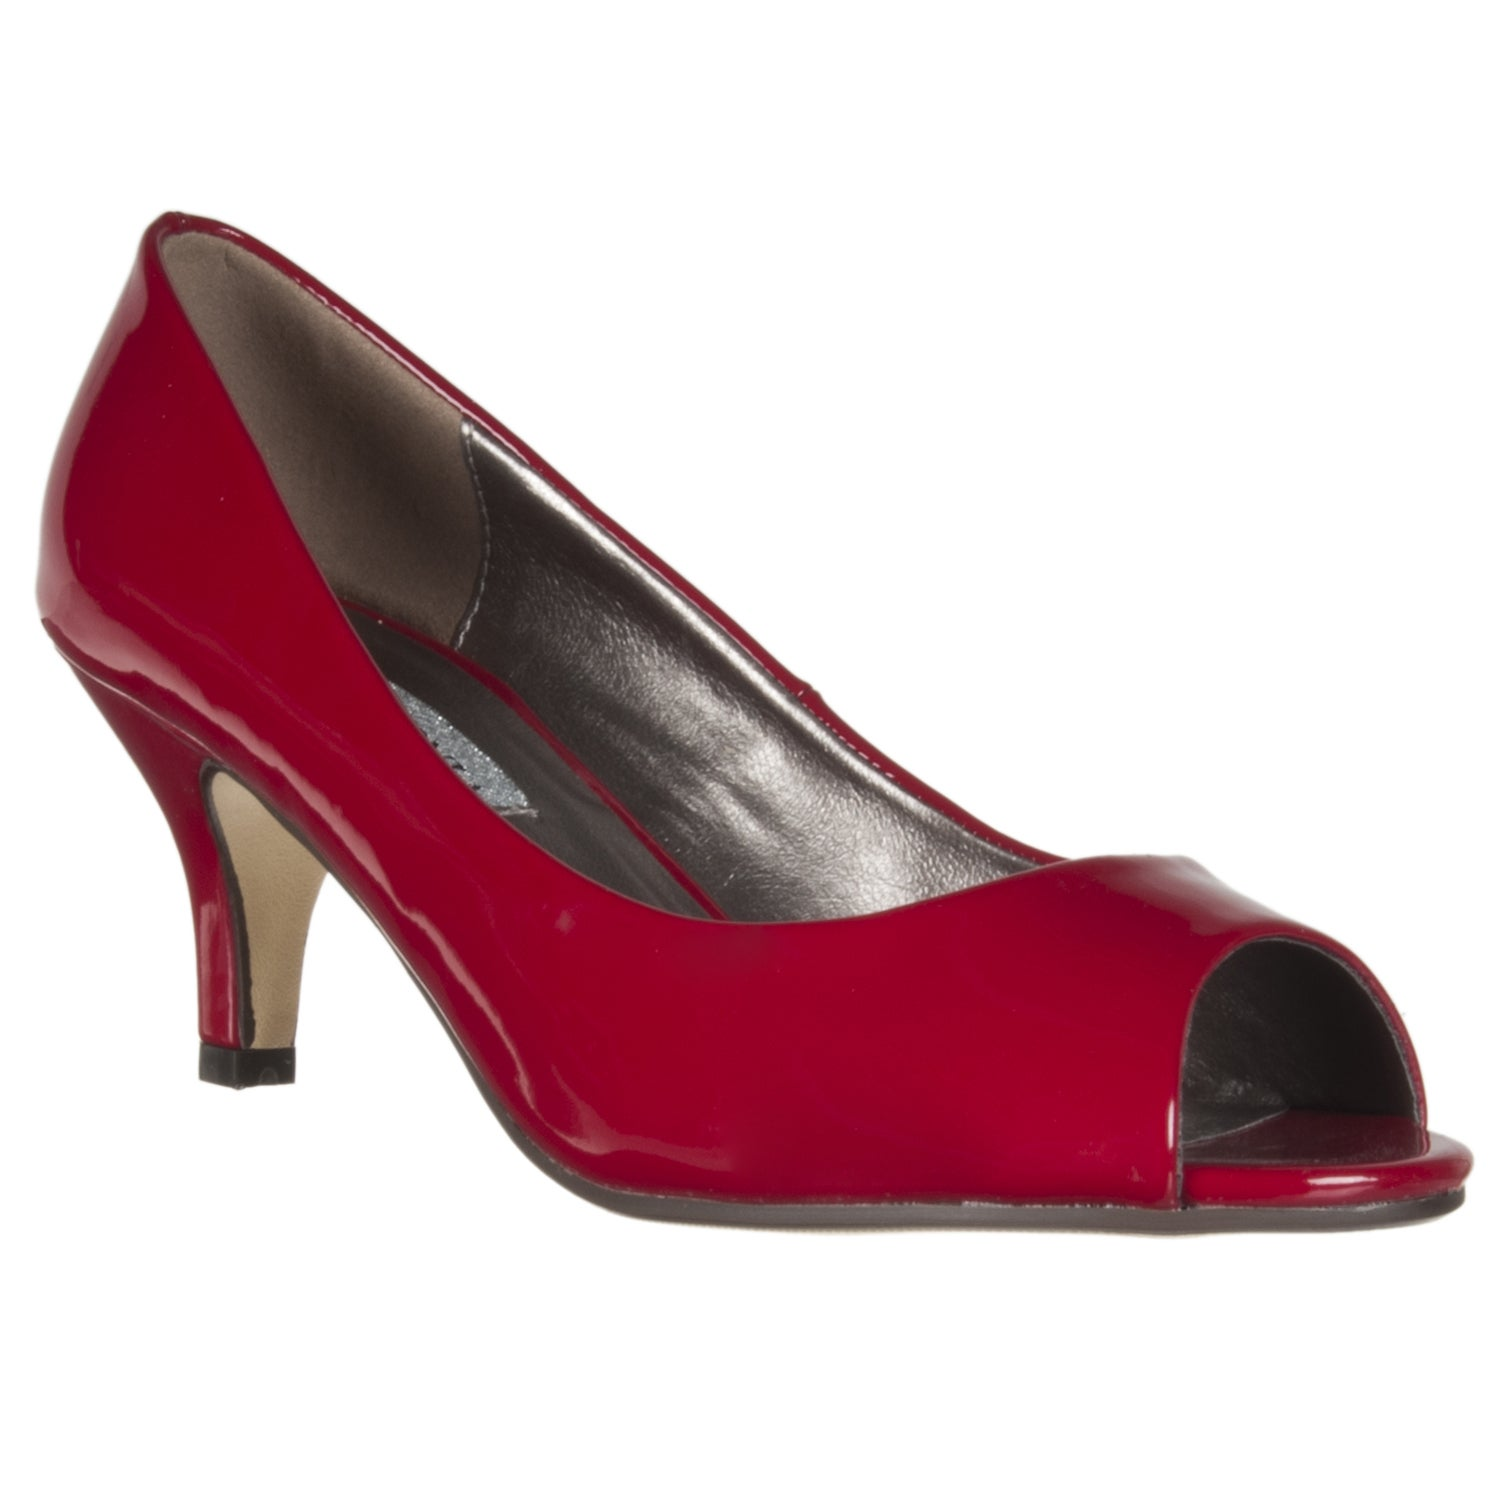 Riverberry Women's Red Patent Peep Toe Pumps